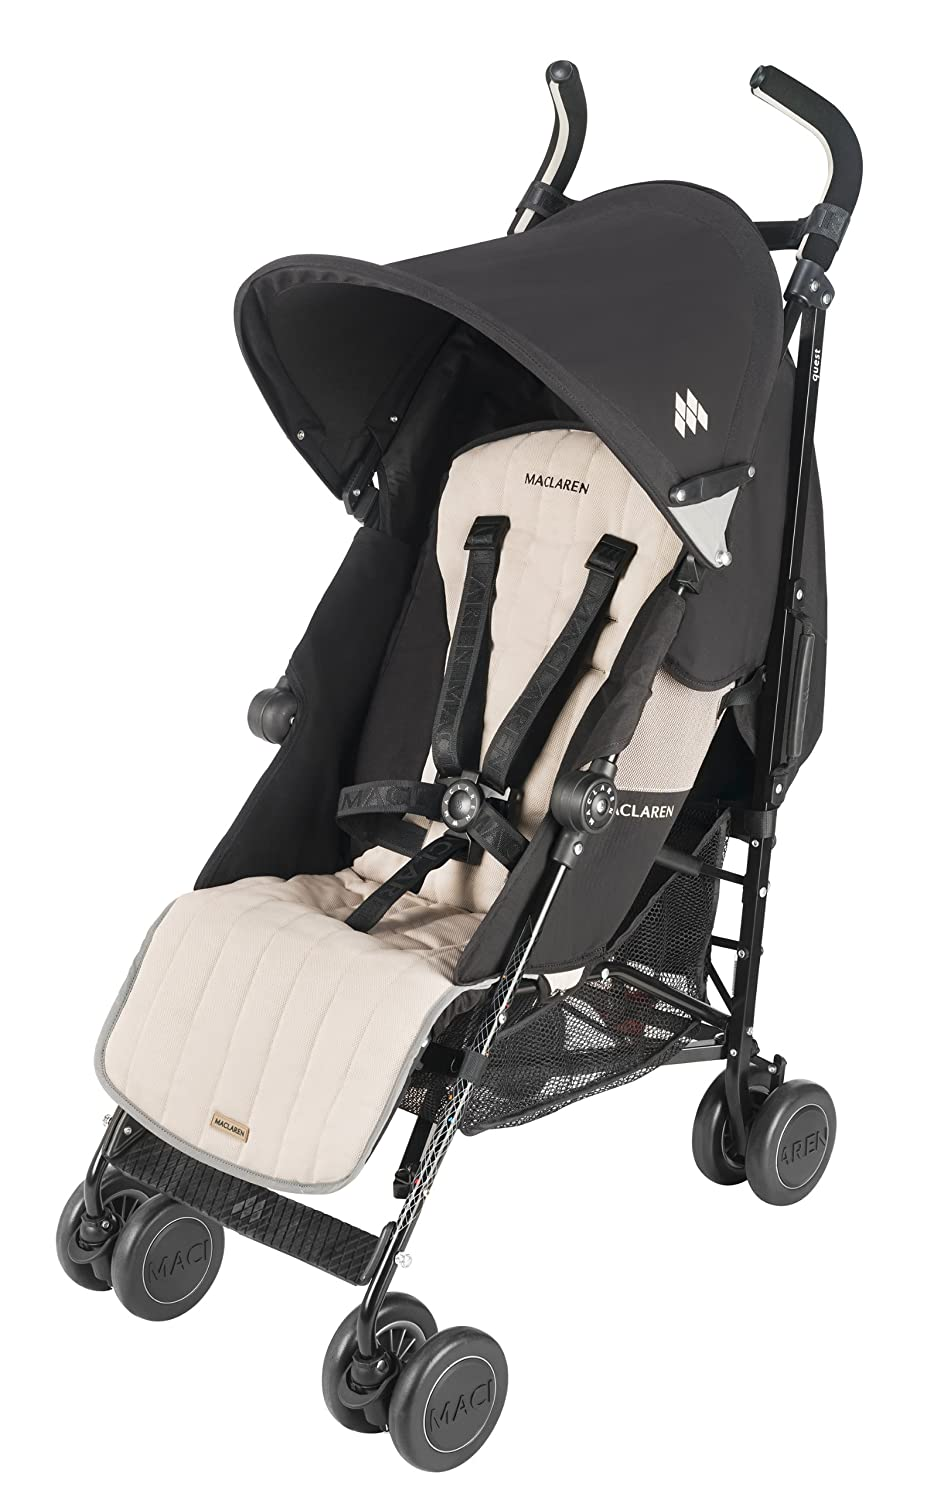 Maclaren Quest Sport Baby Stroller with Raincover - Black/Champagne at Sears.com